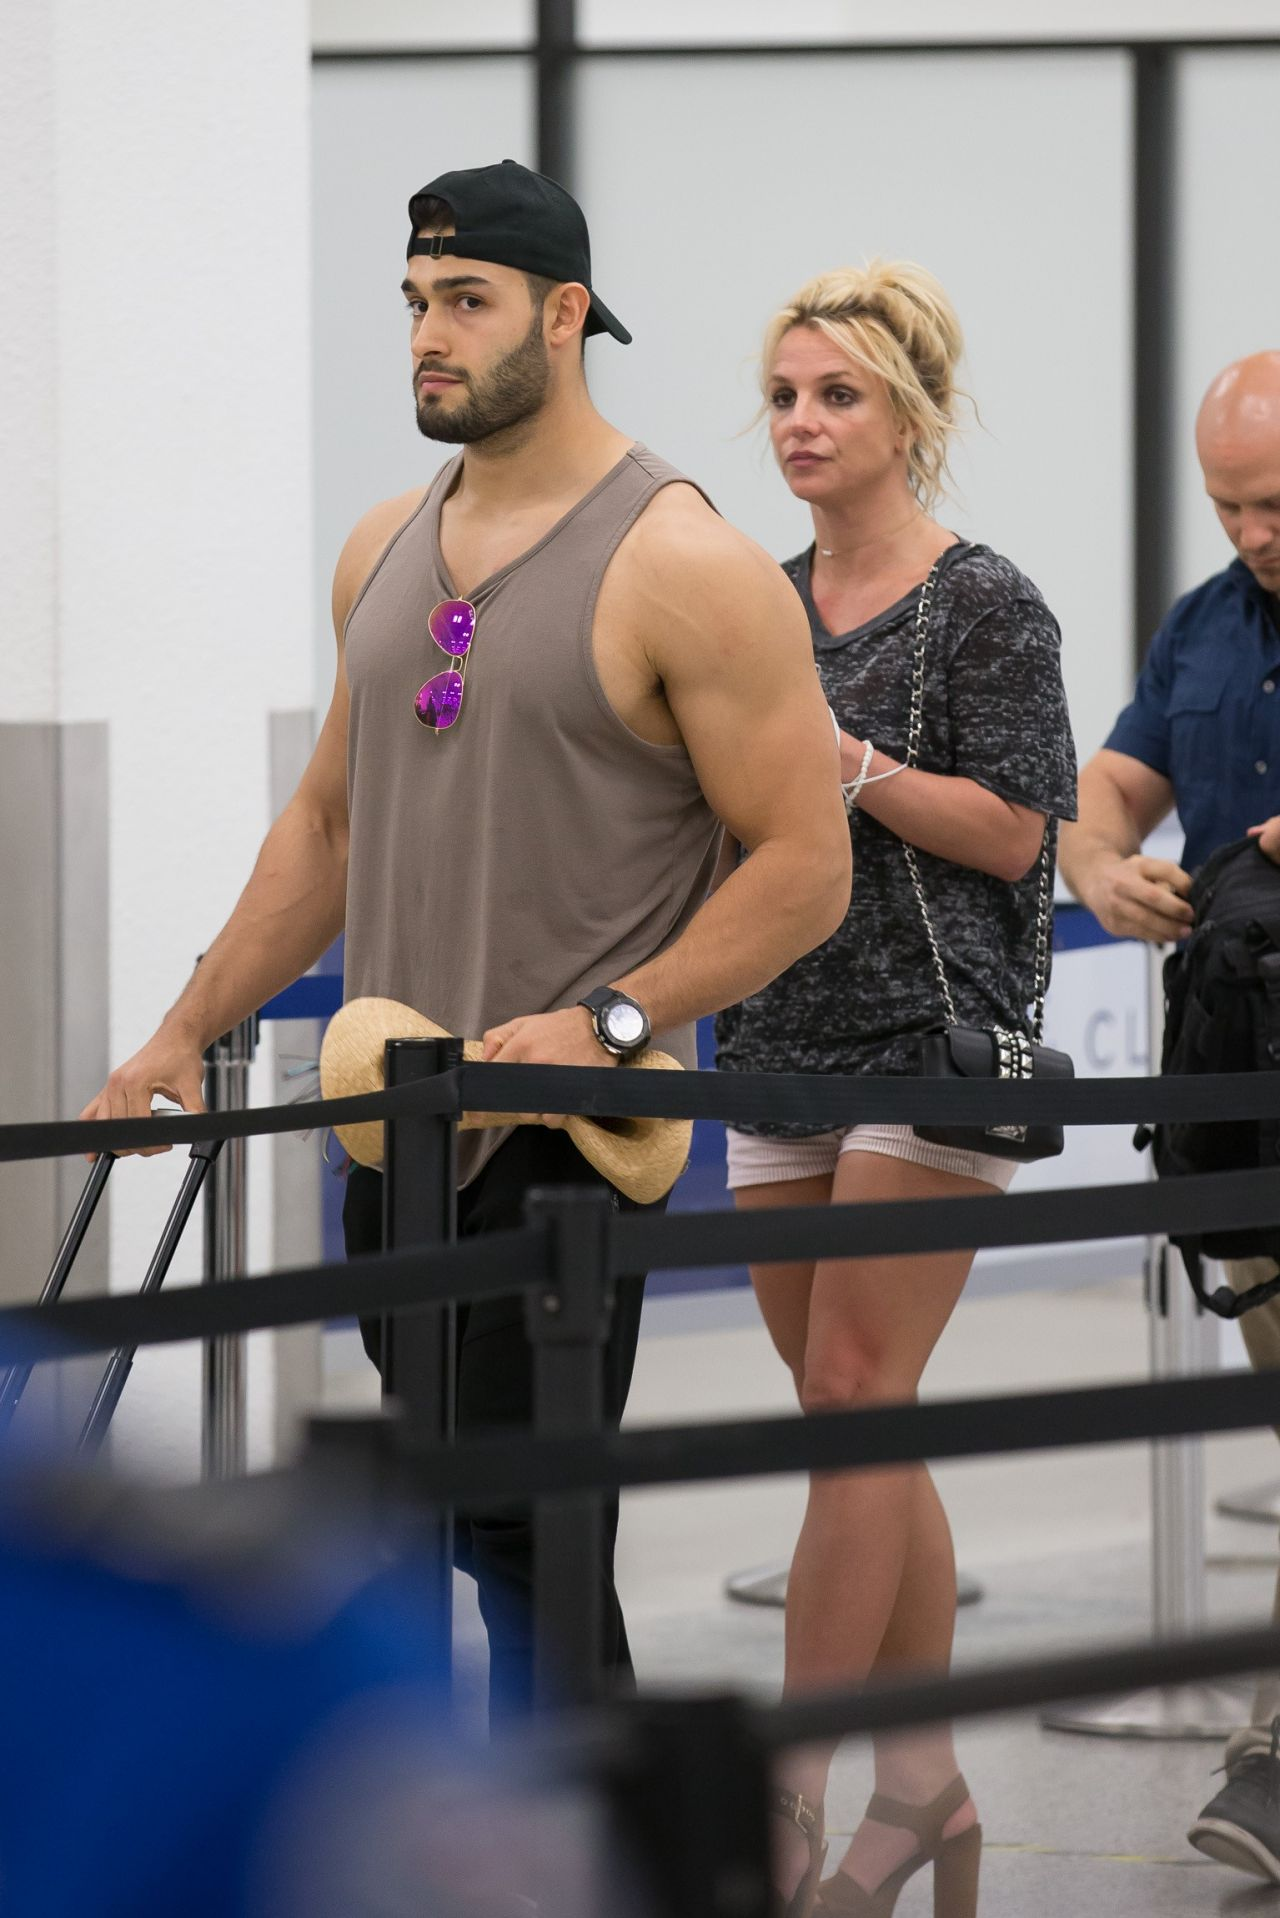 britney-spears-and-boyfriend-sam-asghari-airport-in-miami-06-10-2018-8.jpg